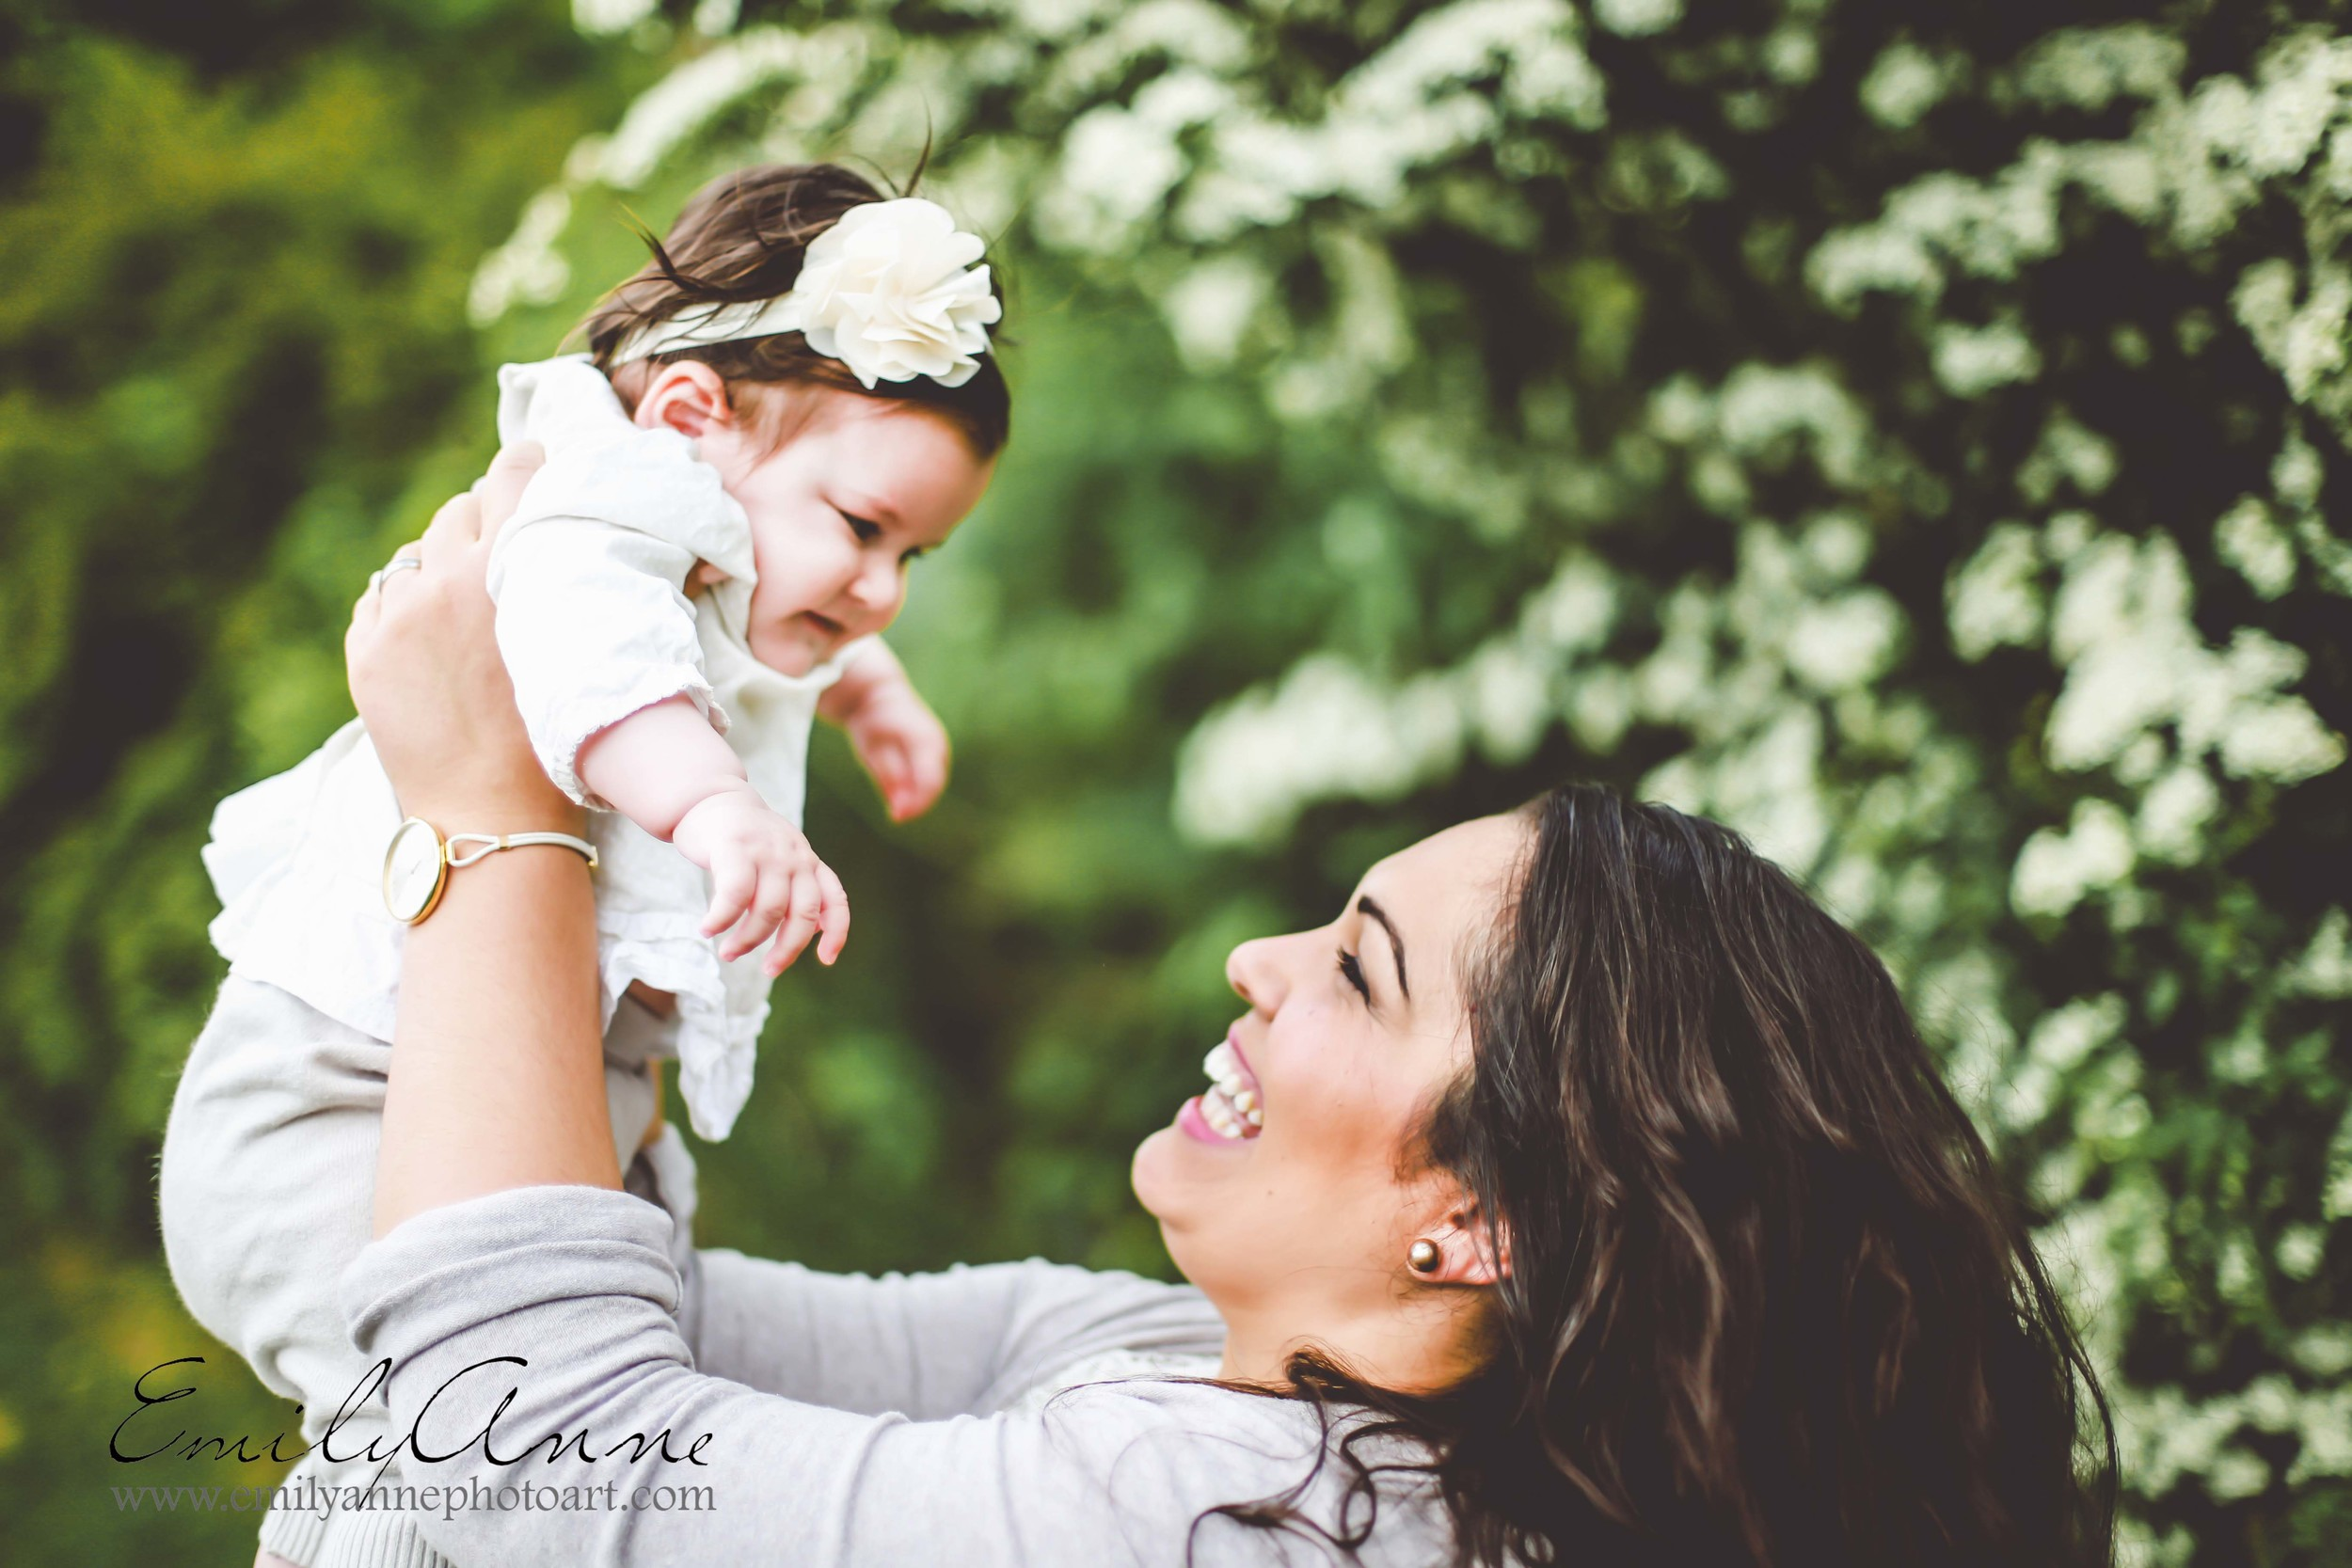 swiss lifestyle and wedding photographer emily anne photography top nashville family and baby photographer shot in Biel (Bienne) Switzerland